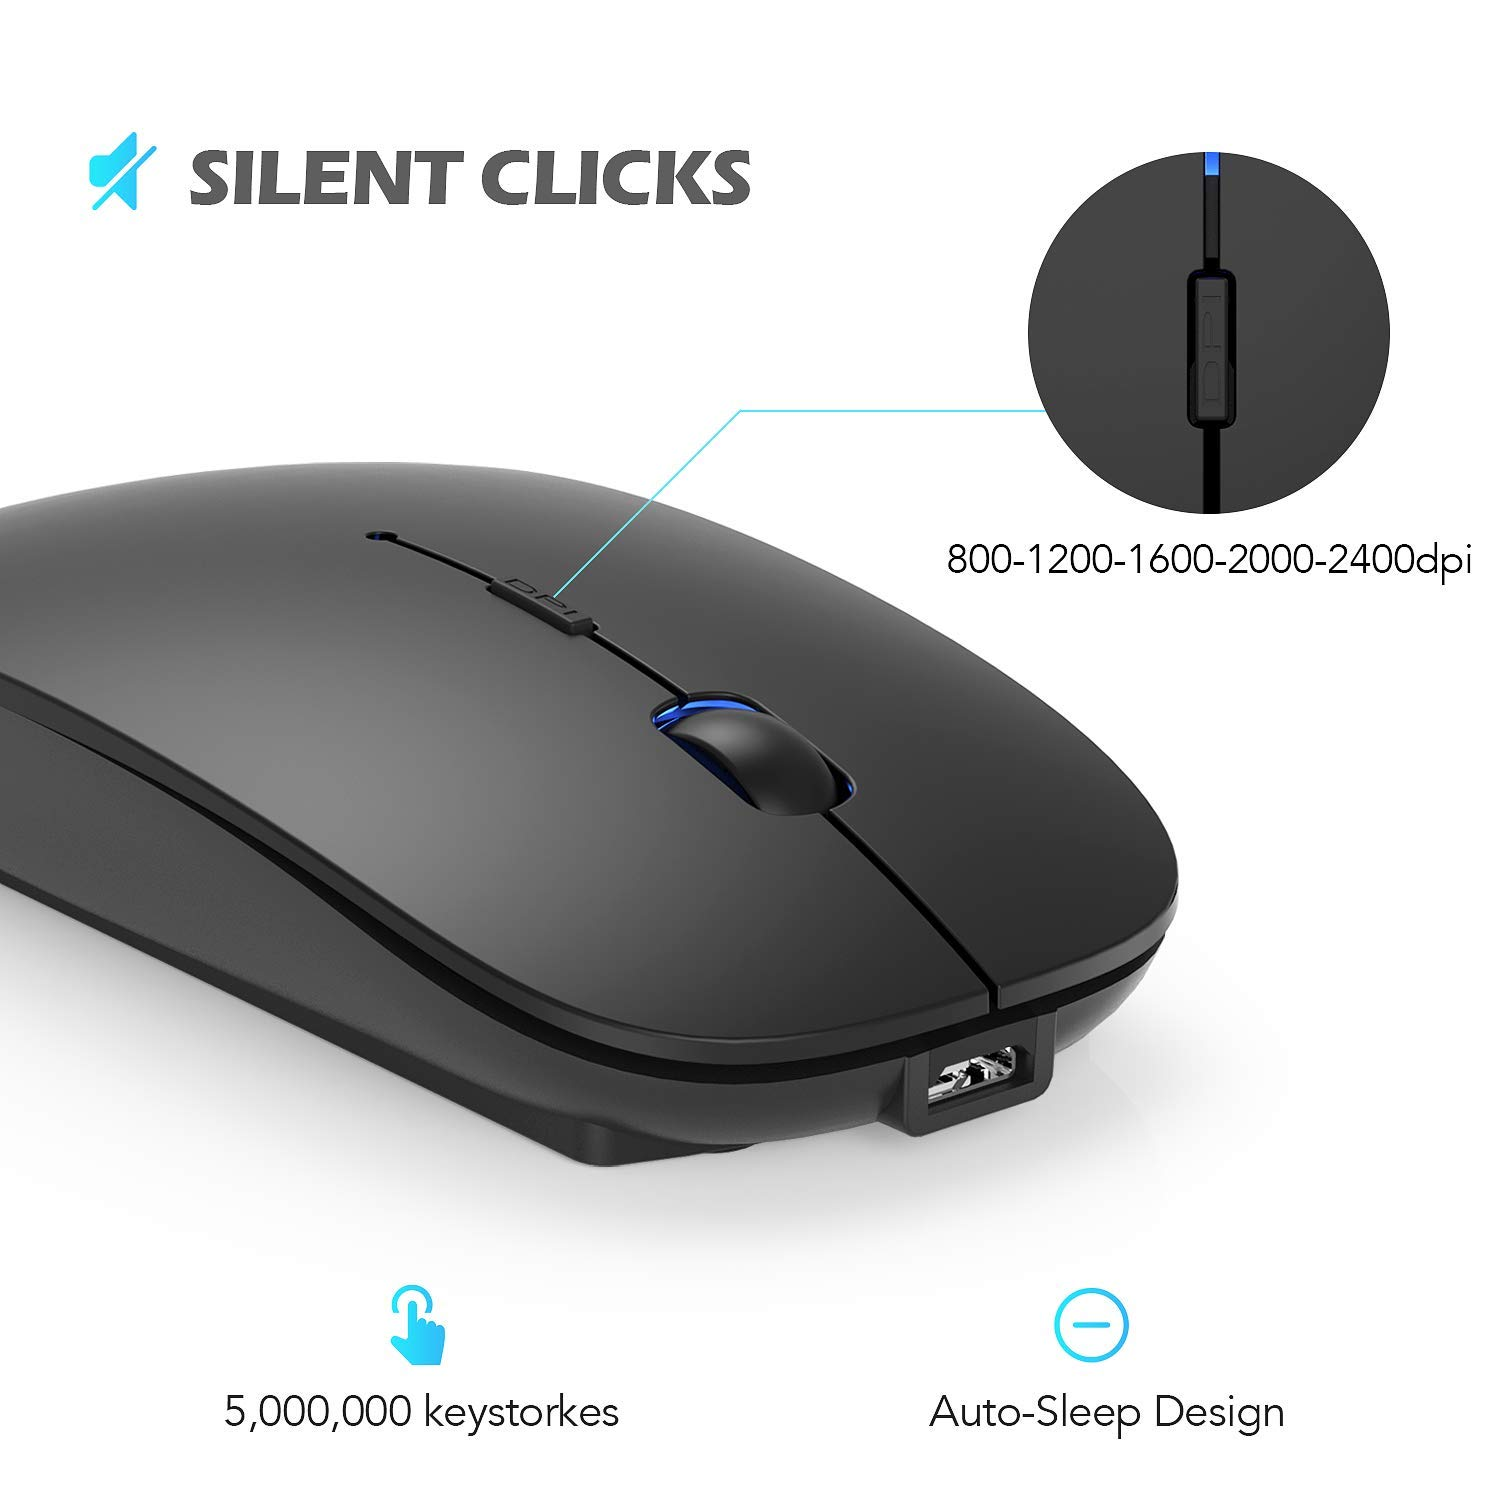 Hommie Wireless Bluetooth Mouse, Dual Mode Bluetooth 4.0 Mouse 2.4G Wireless Rechargeable Computer Mice, 5 Adjustable DPI, Less Noise for PC, Laptop, Mac, Android, Windows